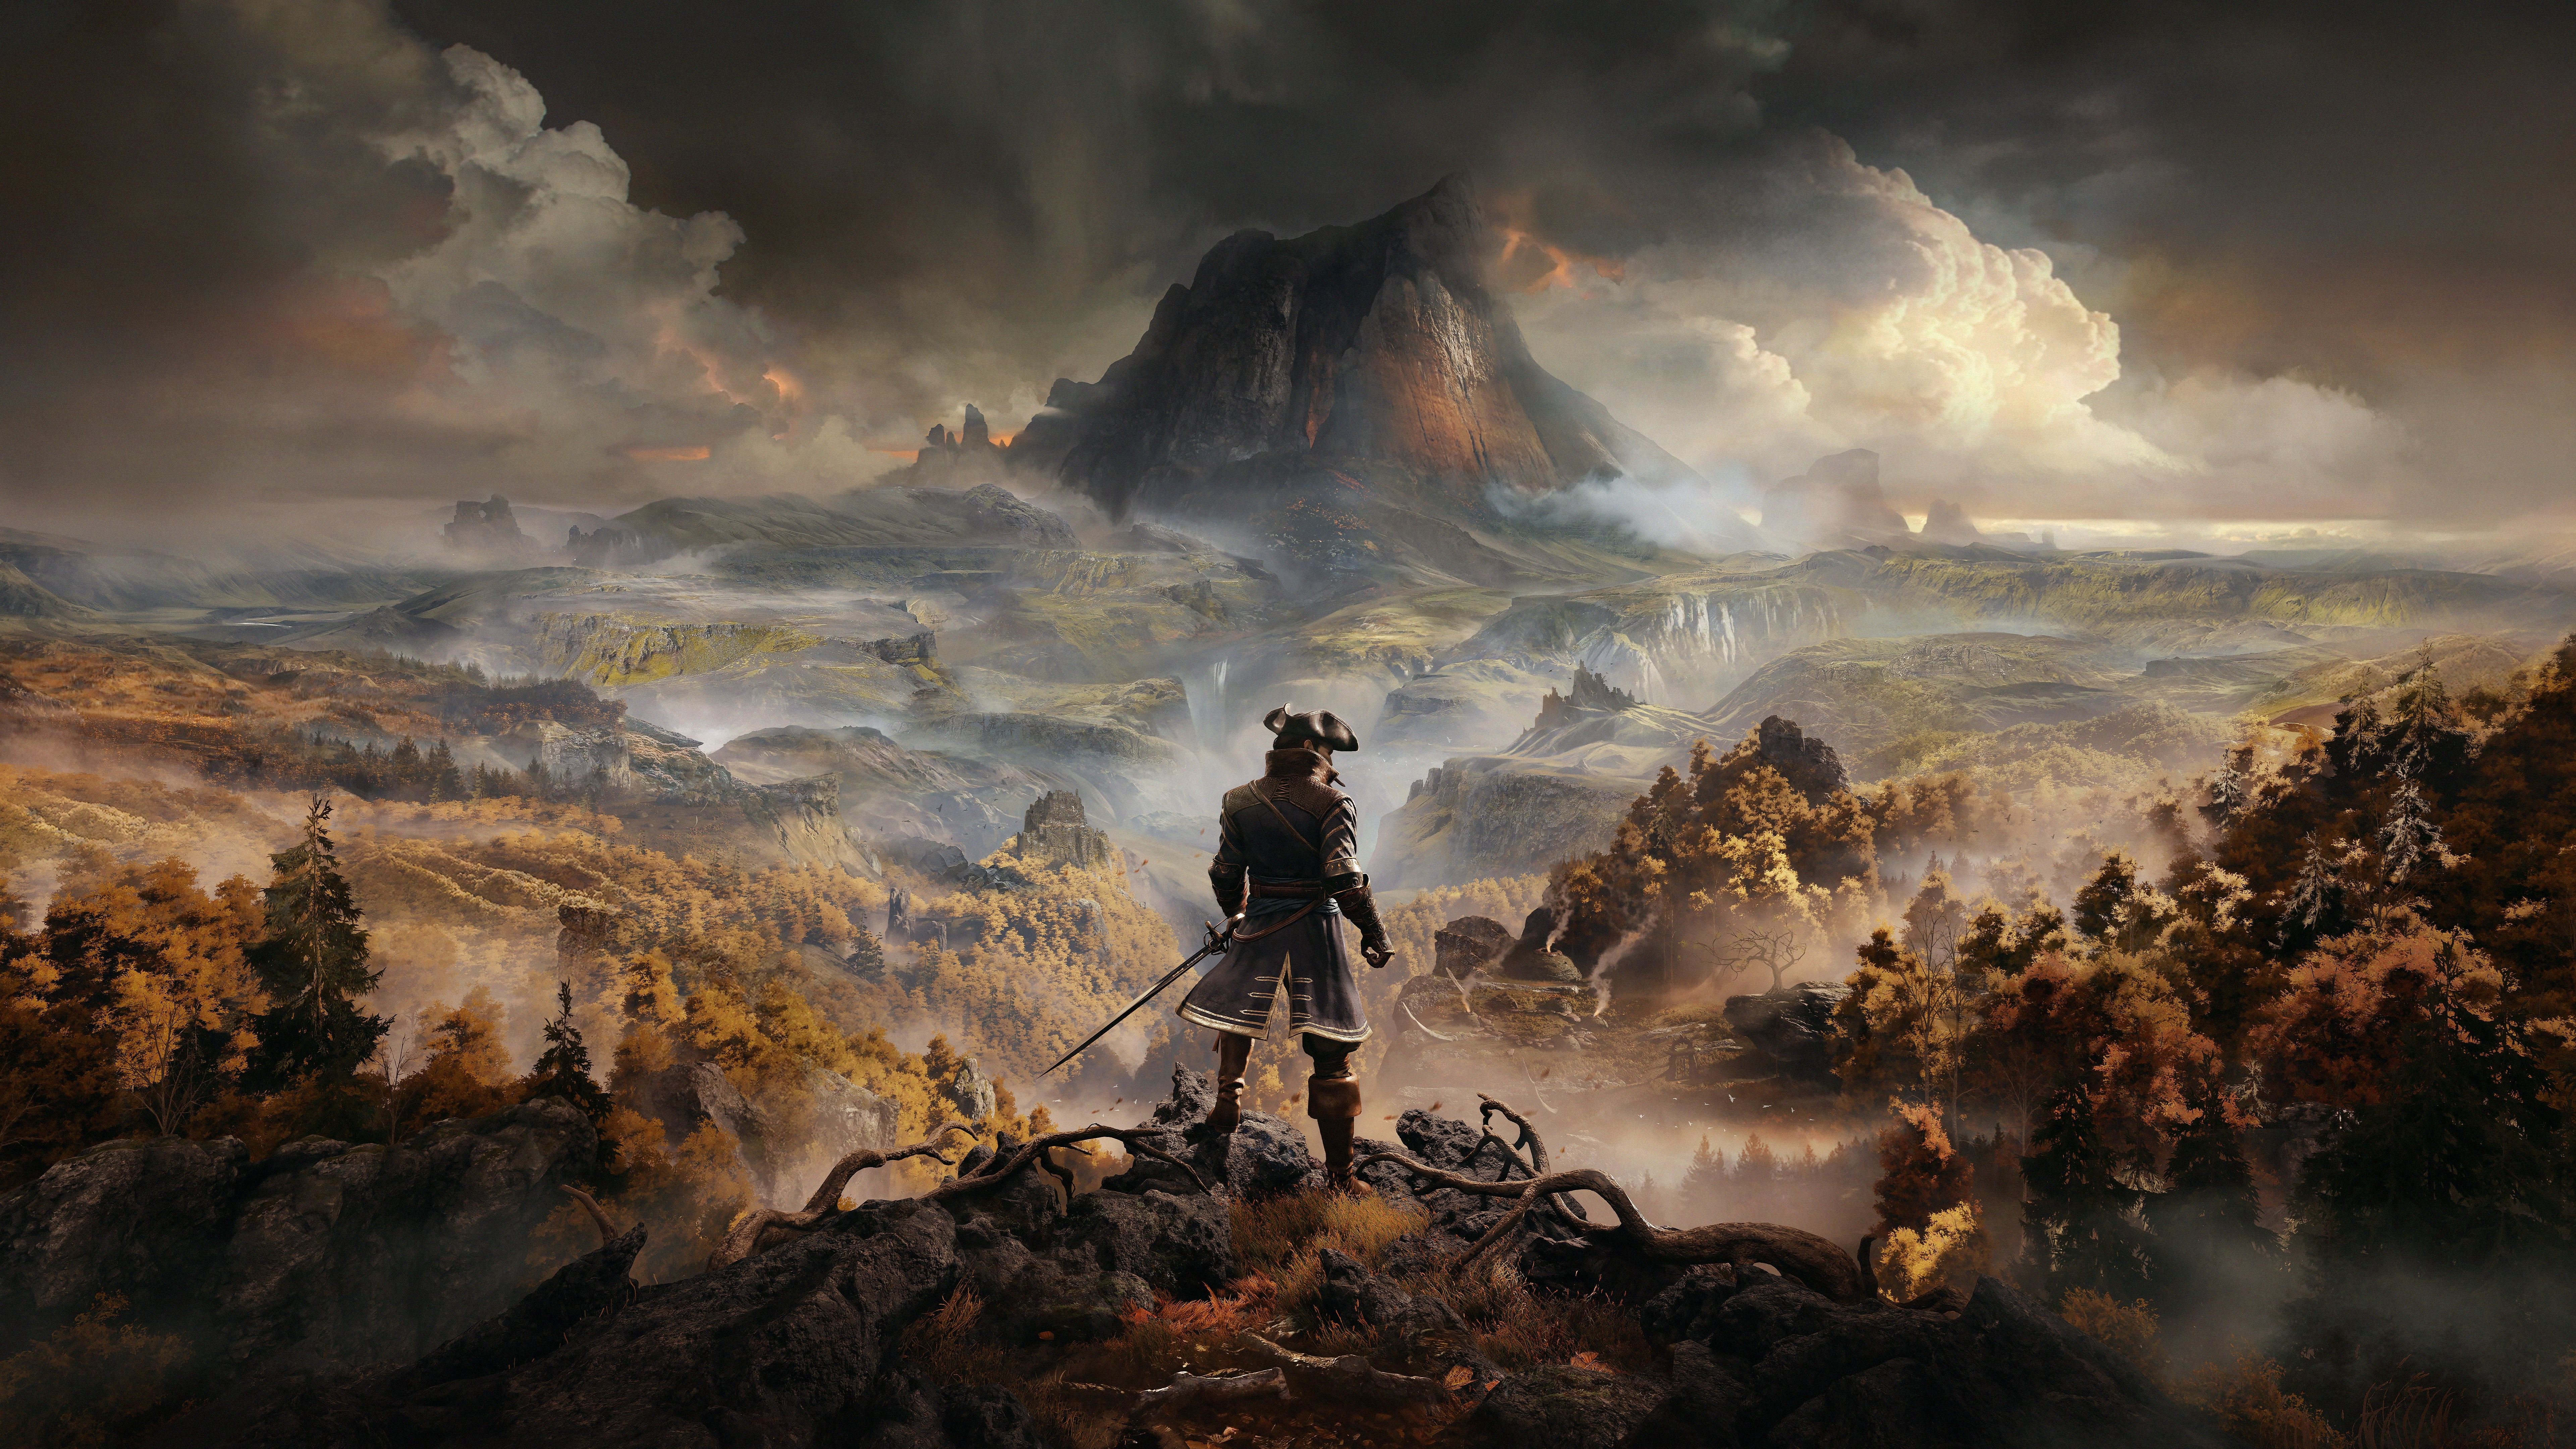 Greedfall 4k 8k Poster Wallpaper Hd Games 4k Wallpapers Images Photos And Background